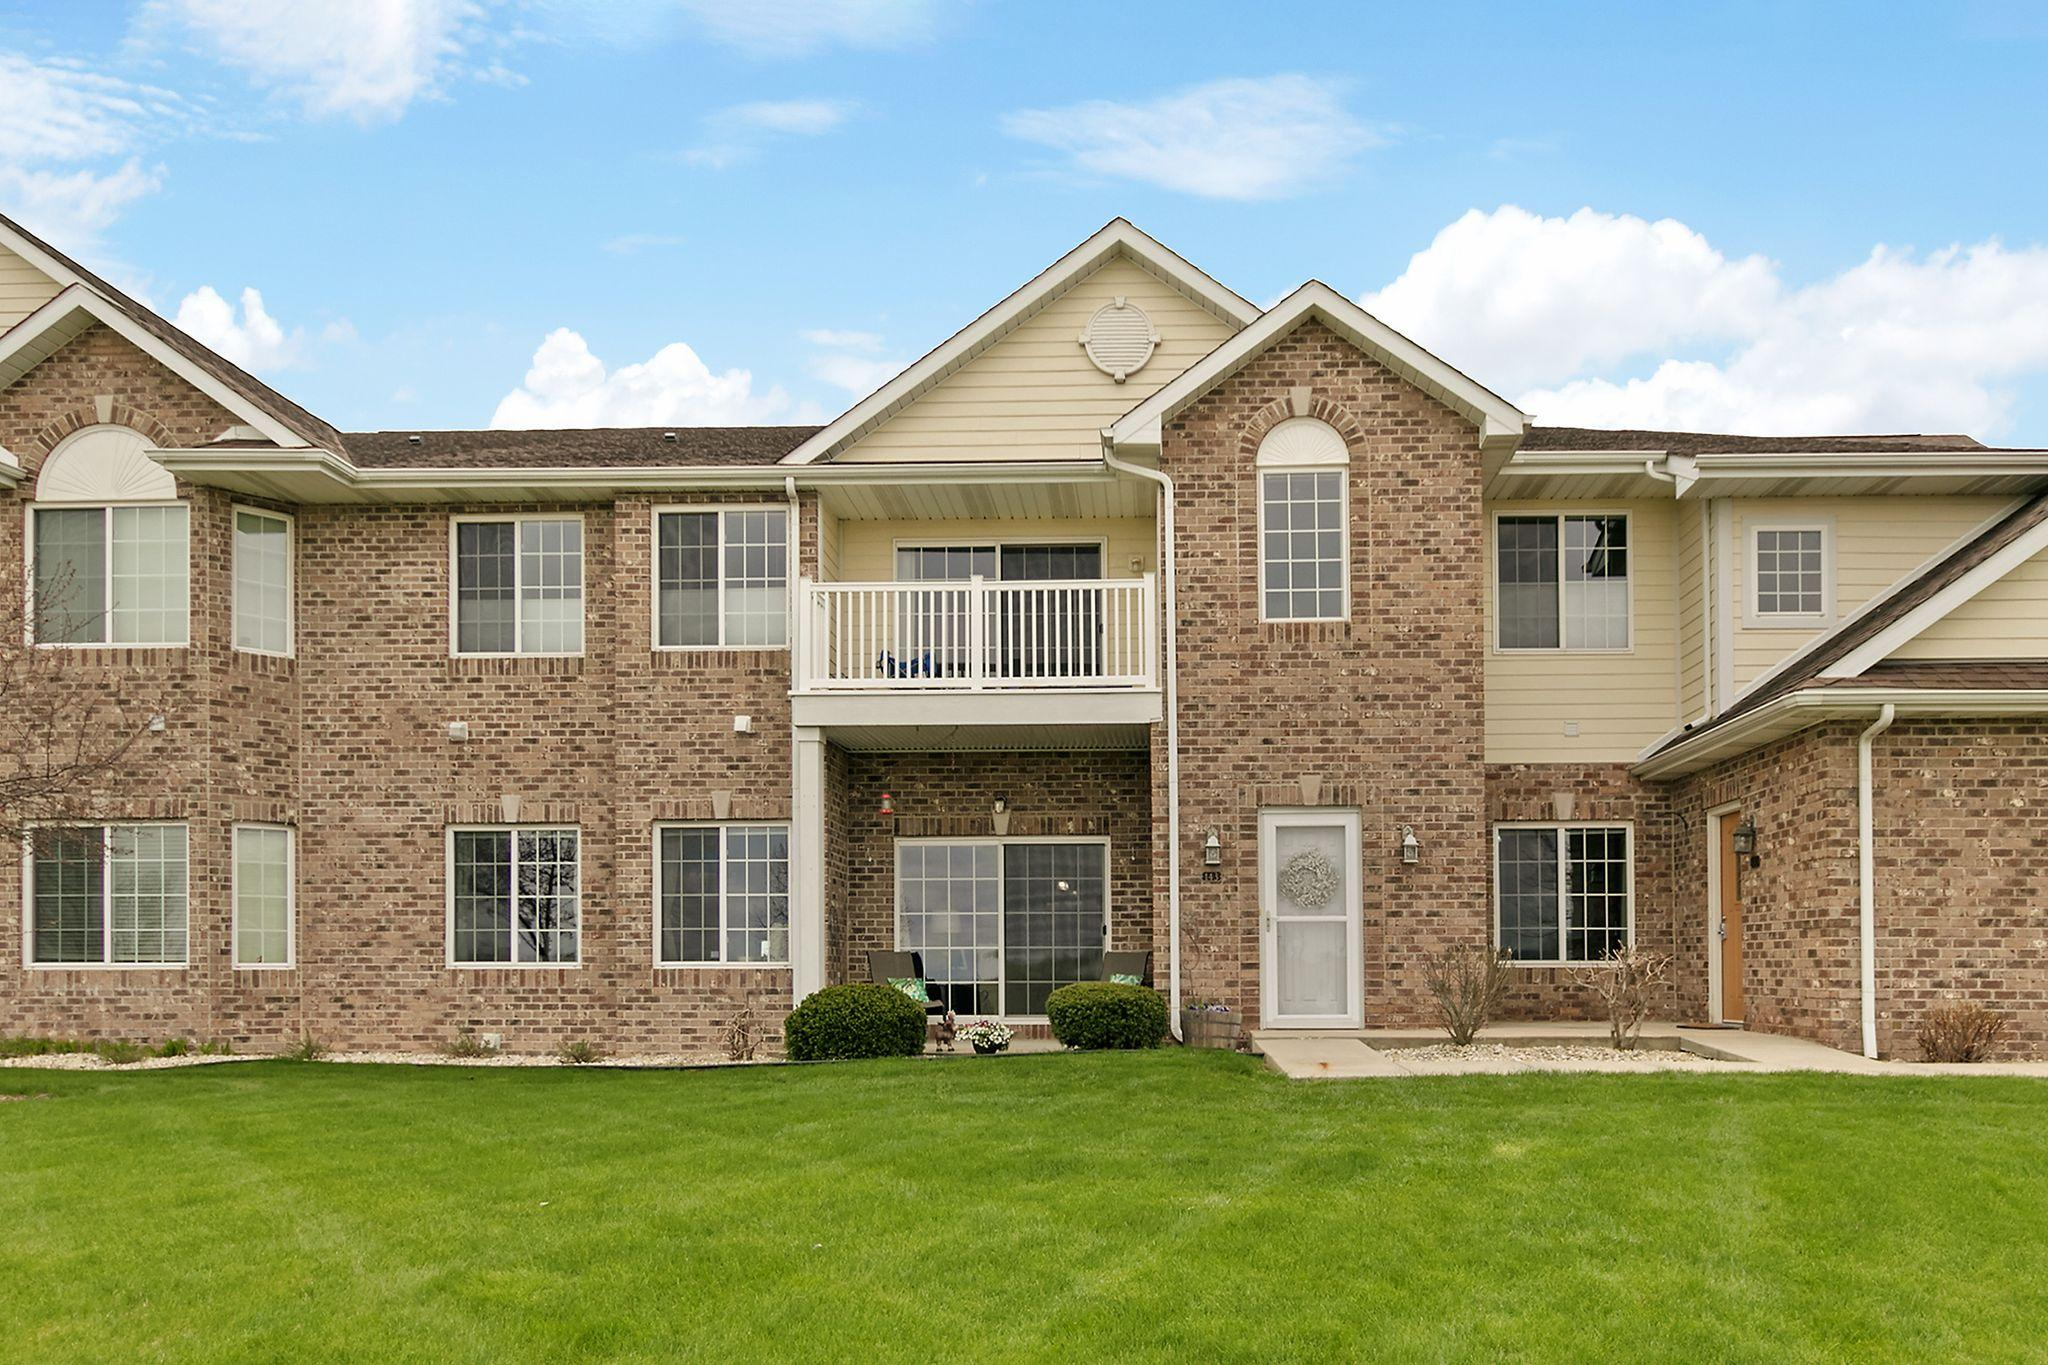 9219 66th Ave, Pleasant Prairie, Wisconsin 53158, 2 Bedrooms Bedrooms, 8 Rooms Rooms,3 BathroomsBathrooms,Condominiums,For Sale,66th Ave,1,1687582